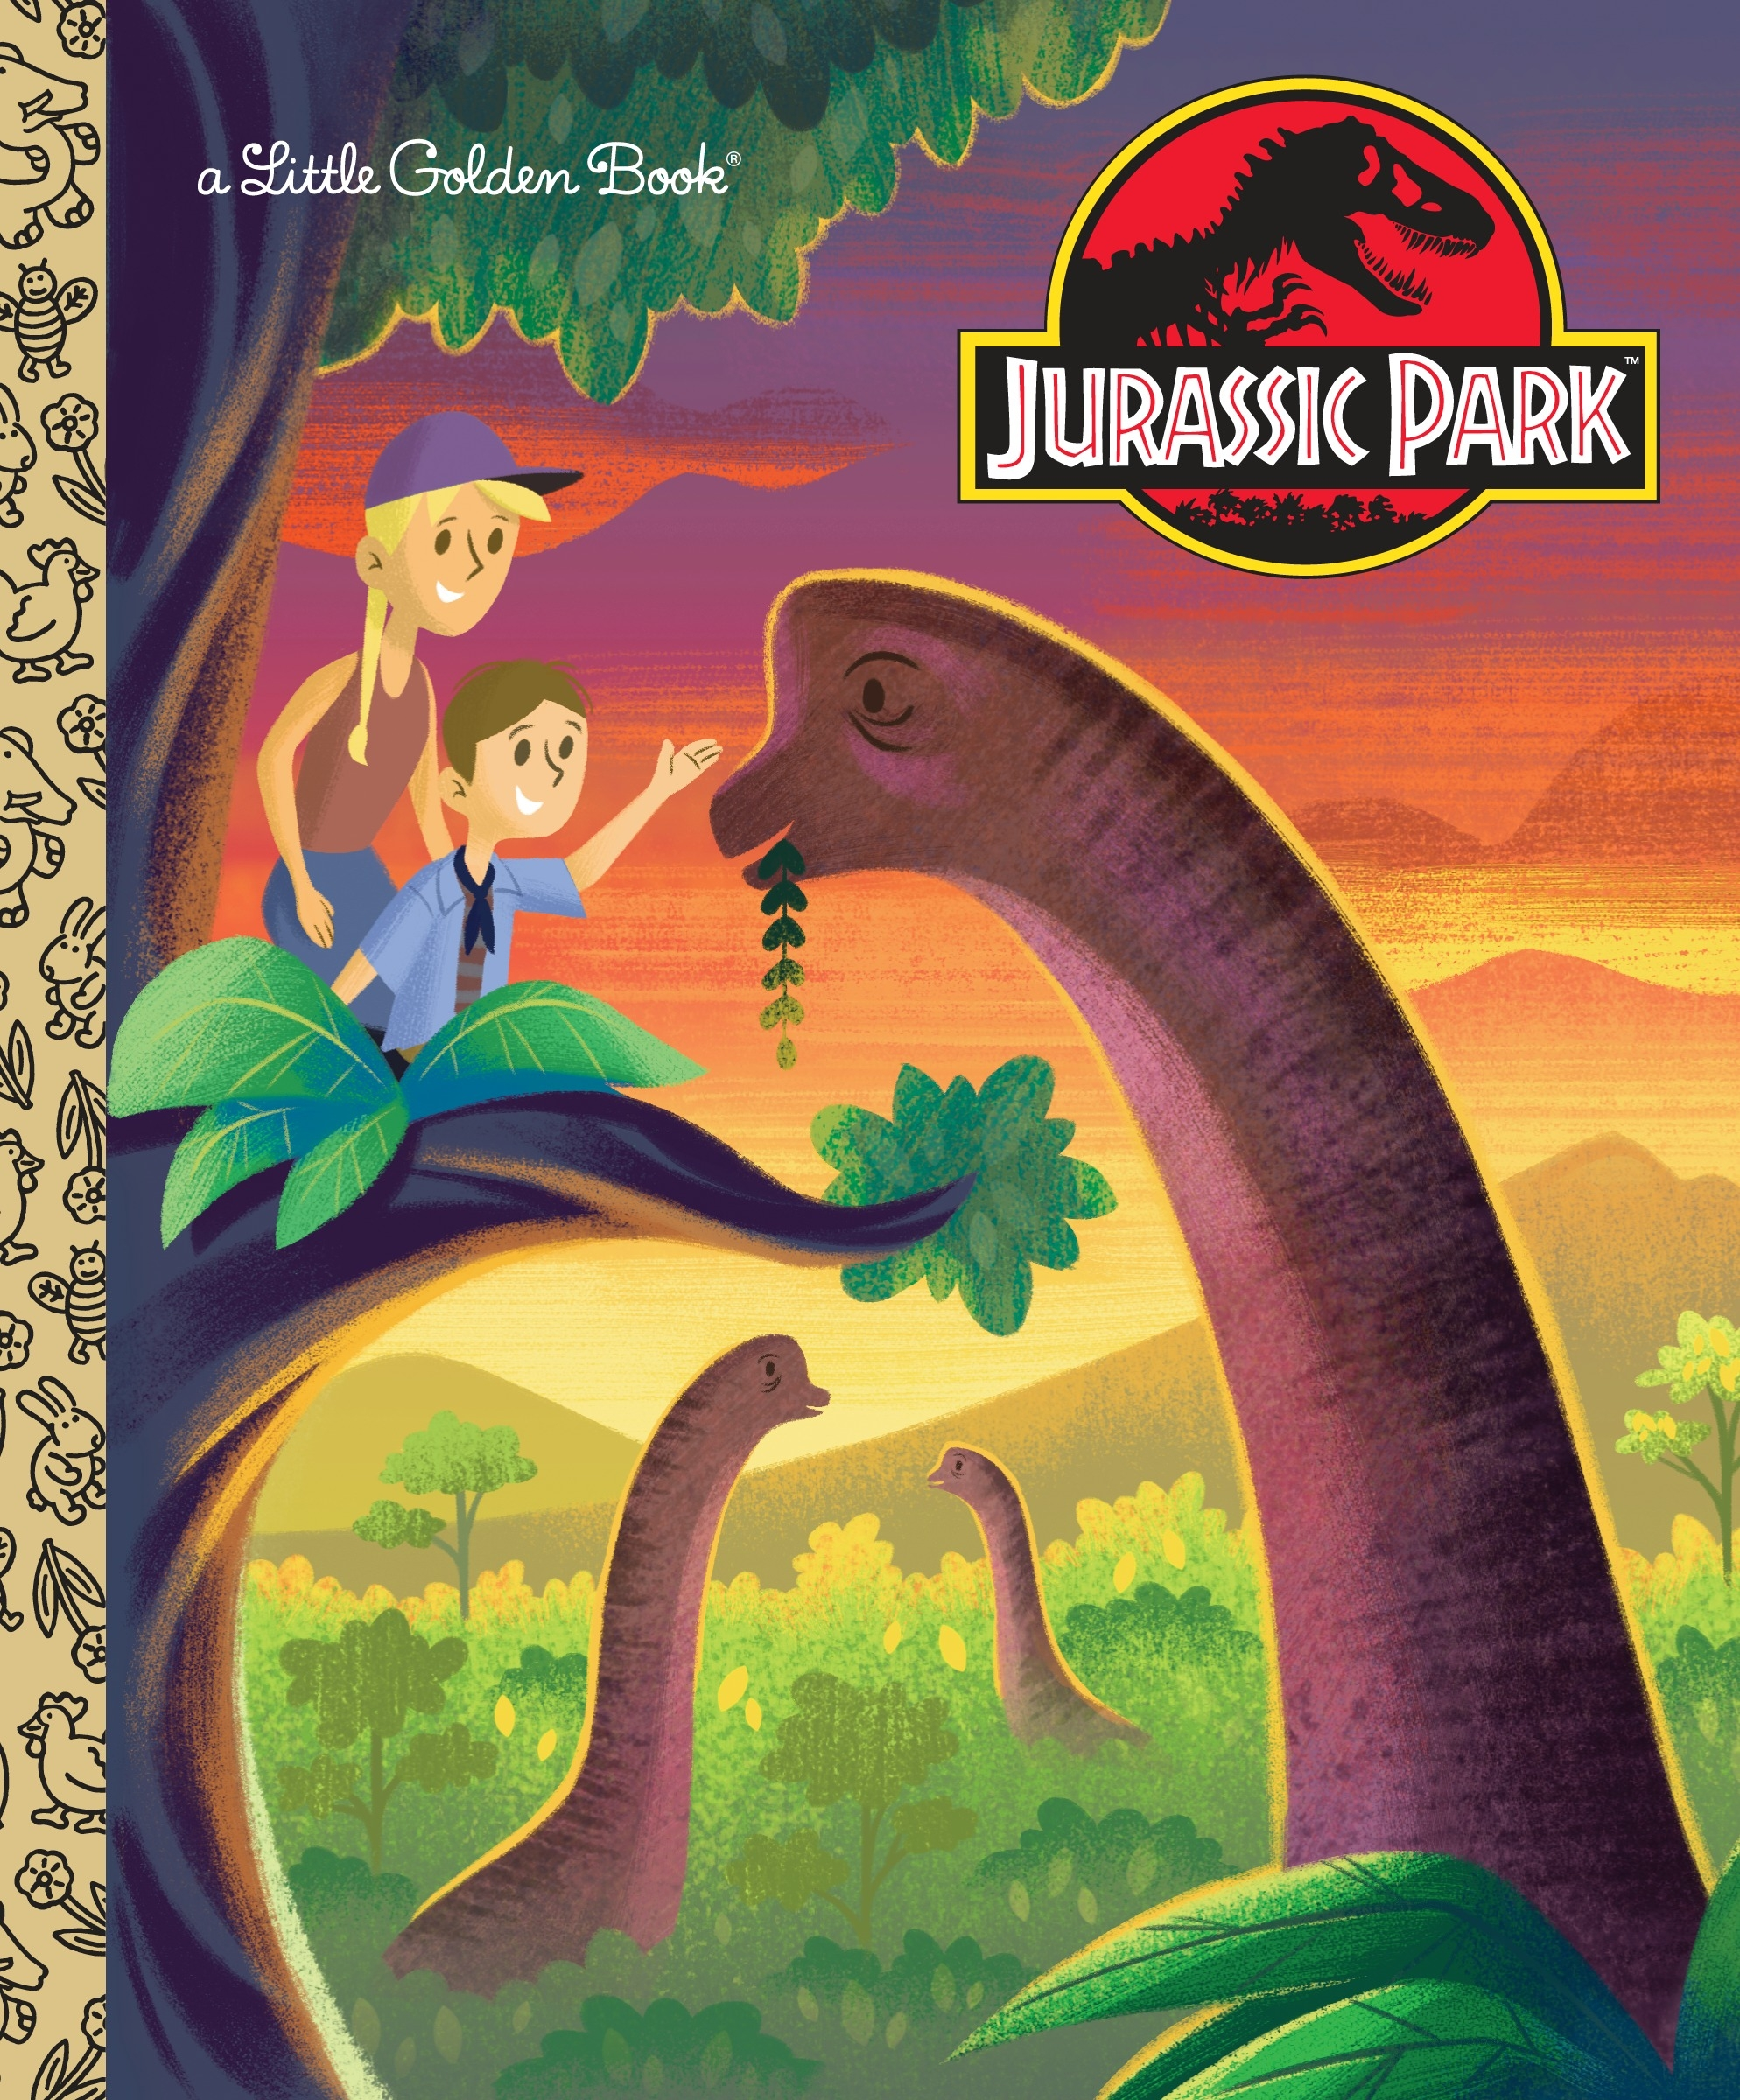 Jurassic Park Little Golden Book